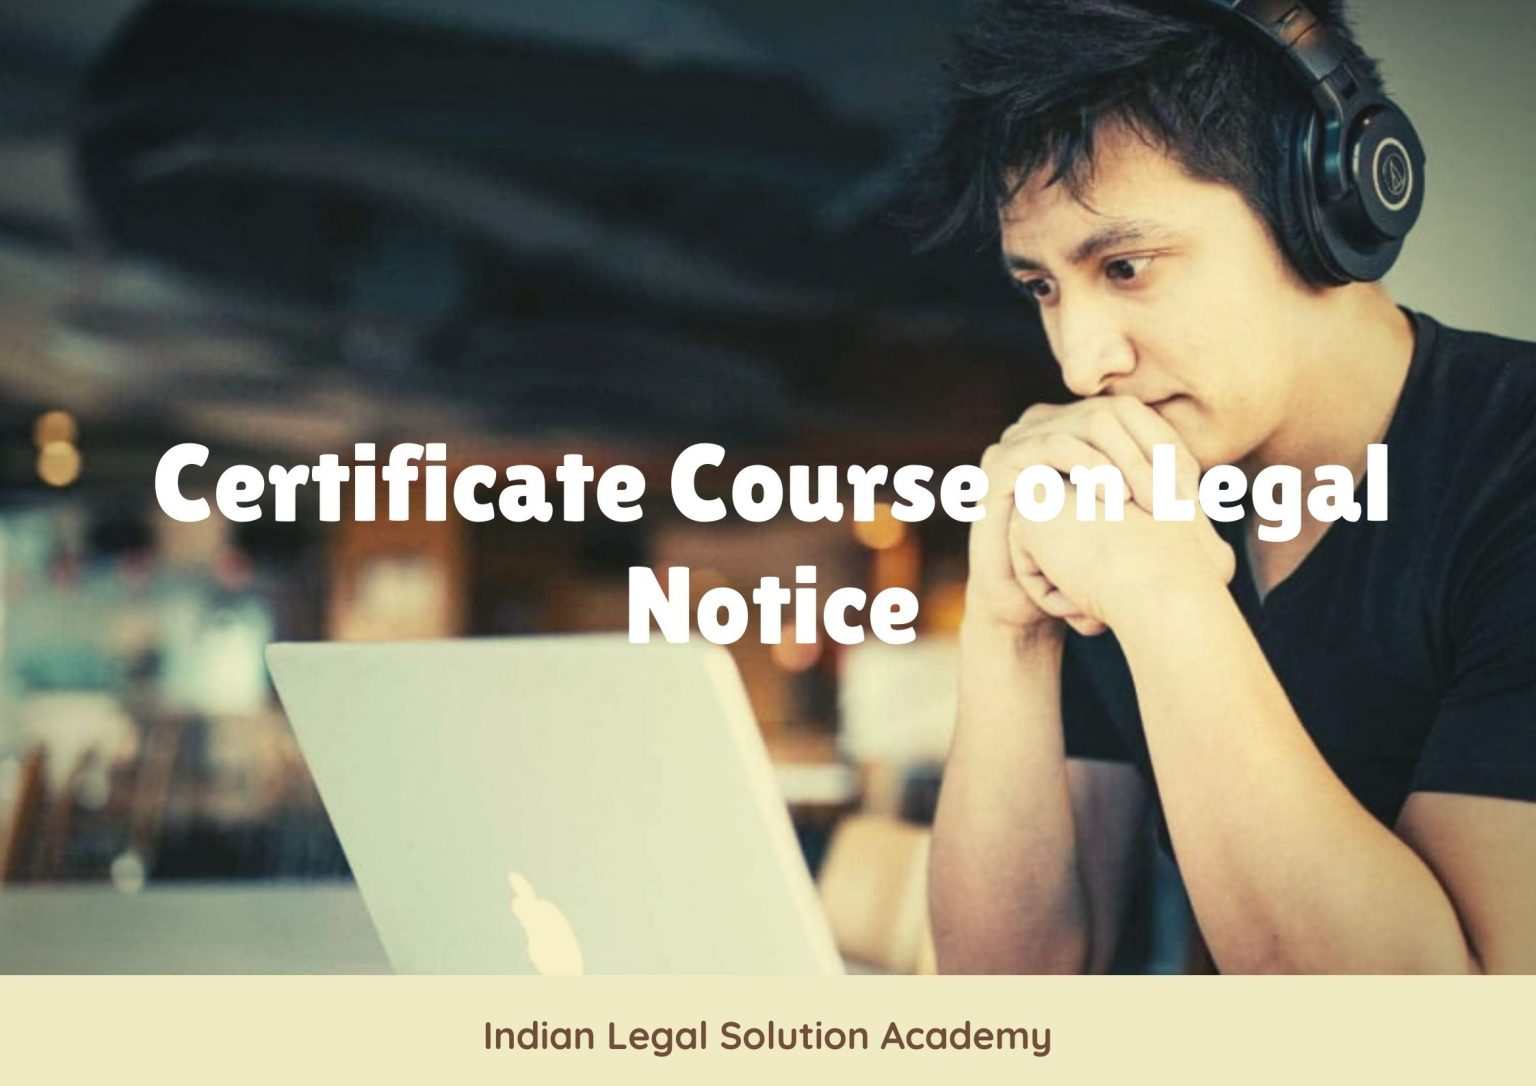 Basic Level Course on Legal Notice, Just at 100/INR